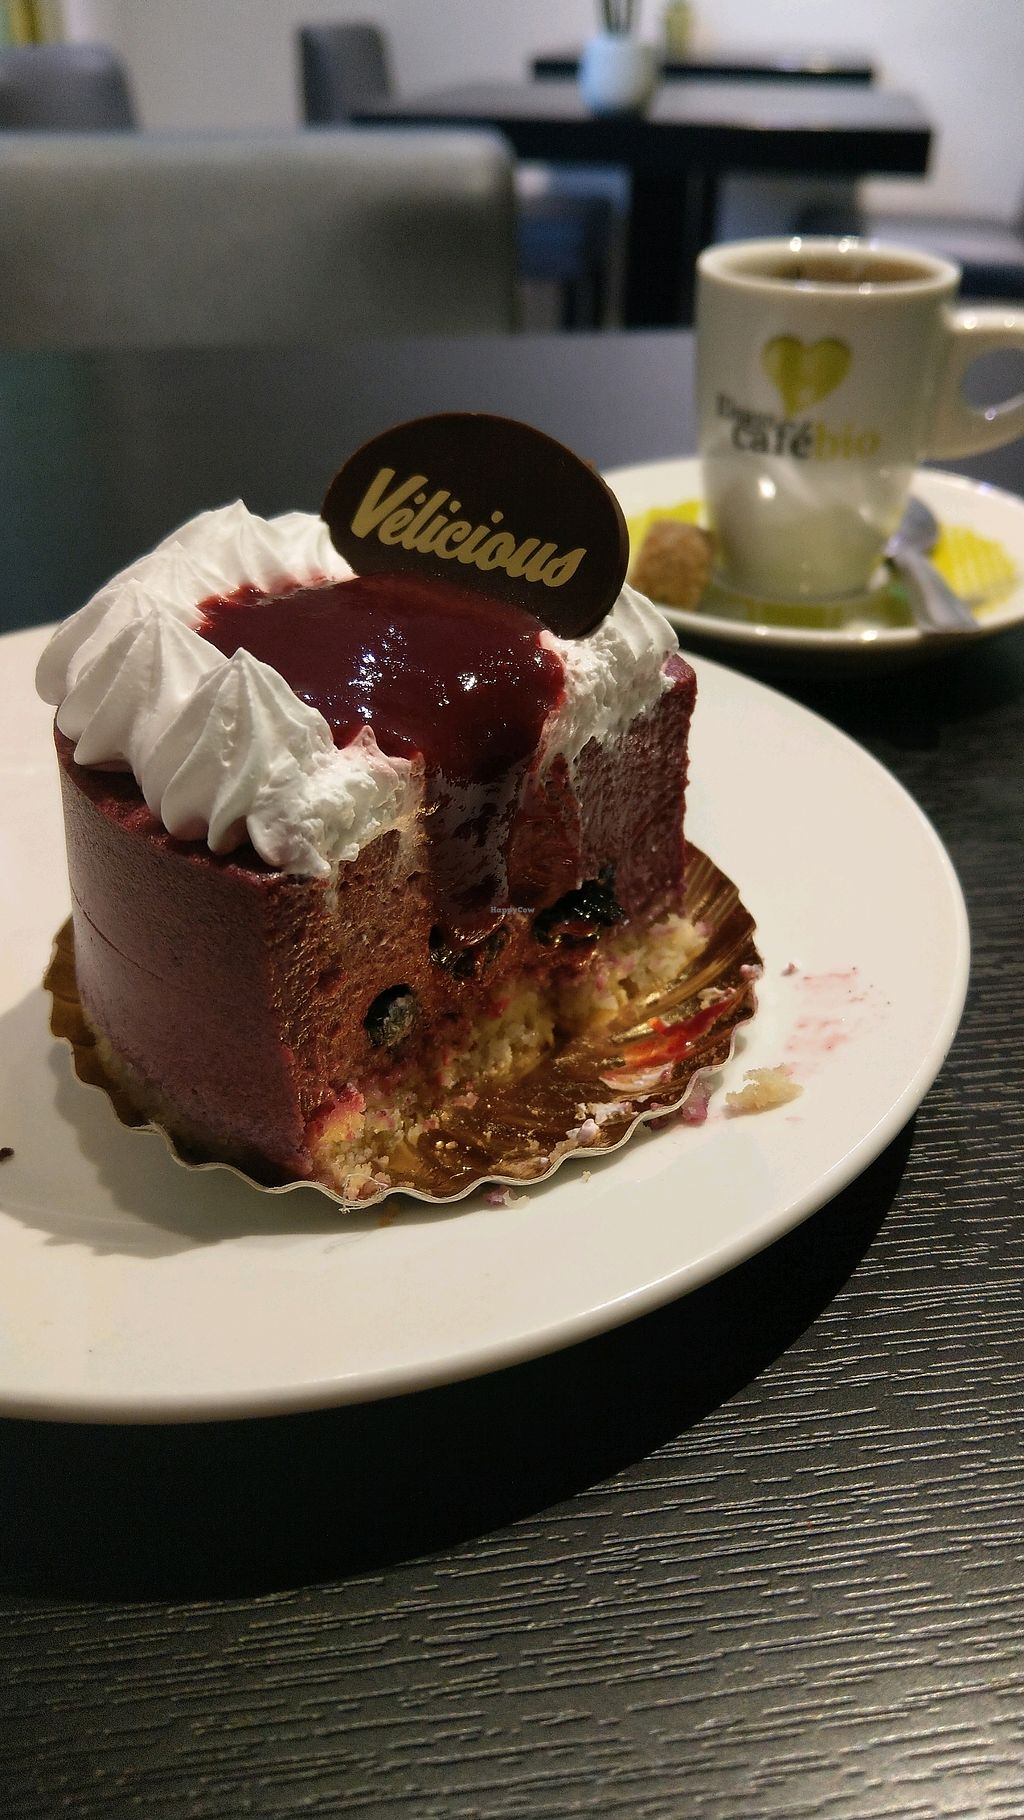 "Photo of Velicious  by <a href=""/members/profile/Fedi."">Fedi.</a> <br/>Entremets au fruits rouge <br/> February 15, 2018  - <a href='/contact/abuse/image/64013/359683'>Report</a>"